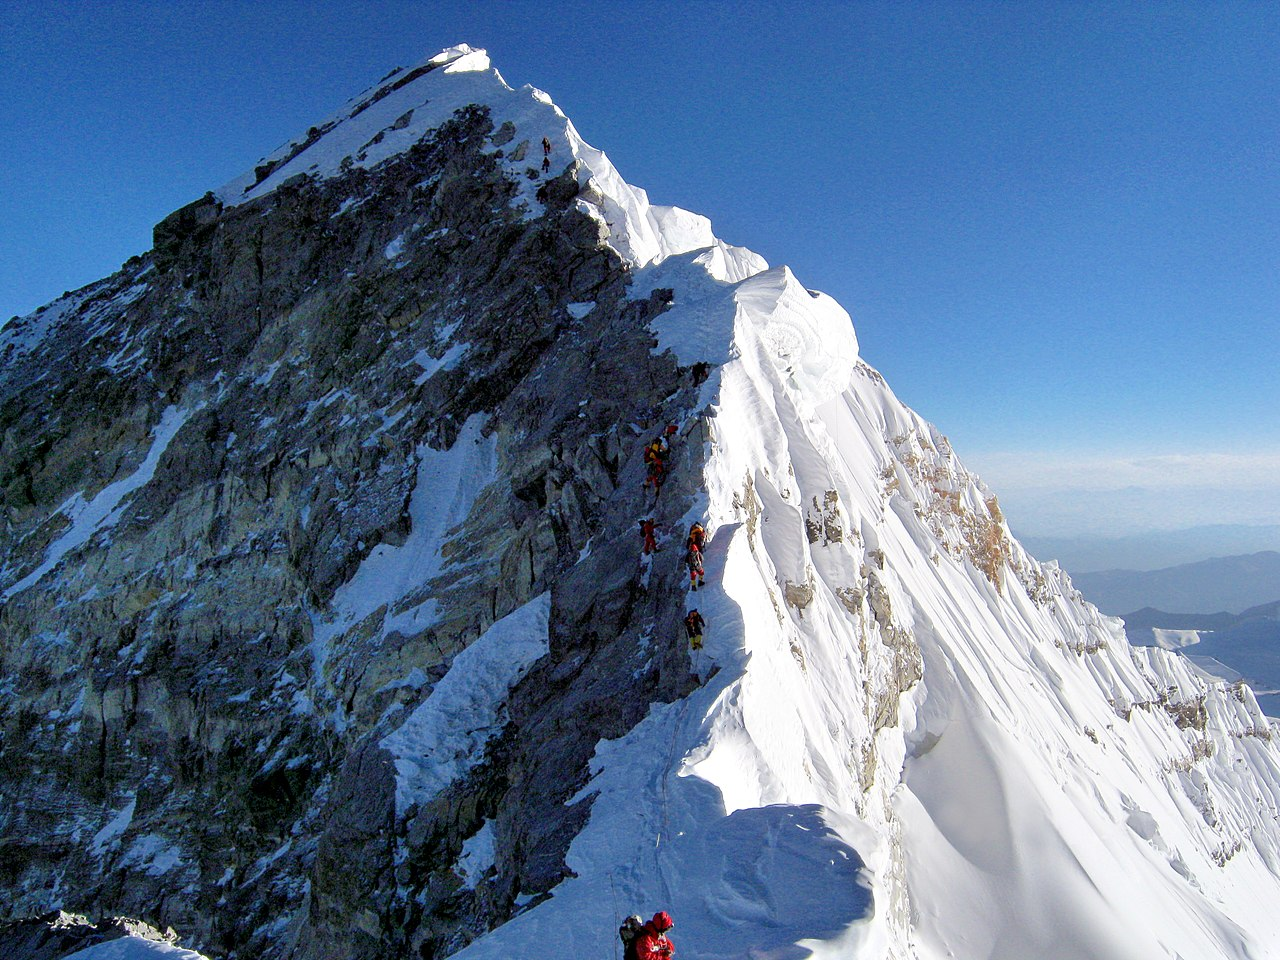 Hillary Step, along the final route to the summit of Everest from Camp 4, the final camp in the trek. Licensed under CC BY-SA 4.0, from MagentaGreen from Wikimedia